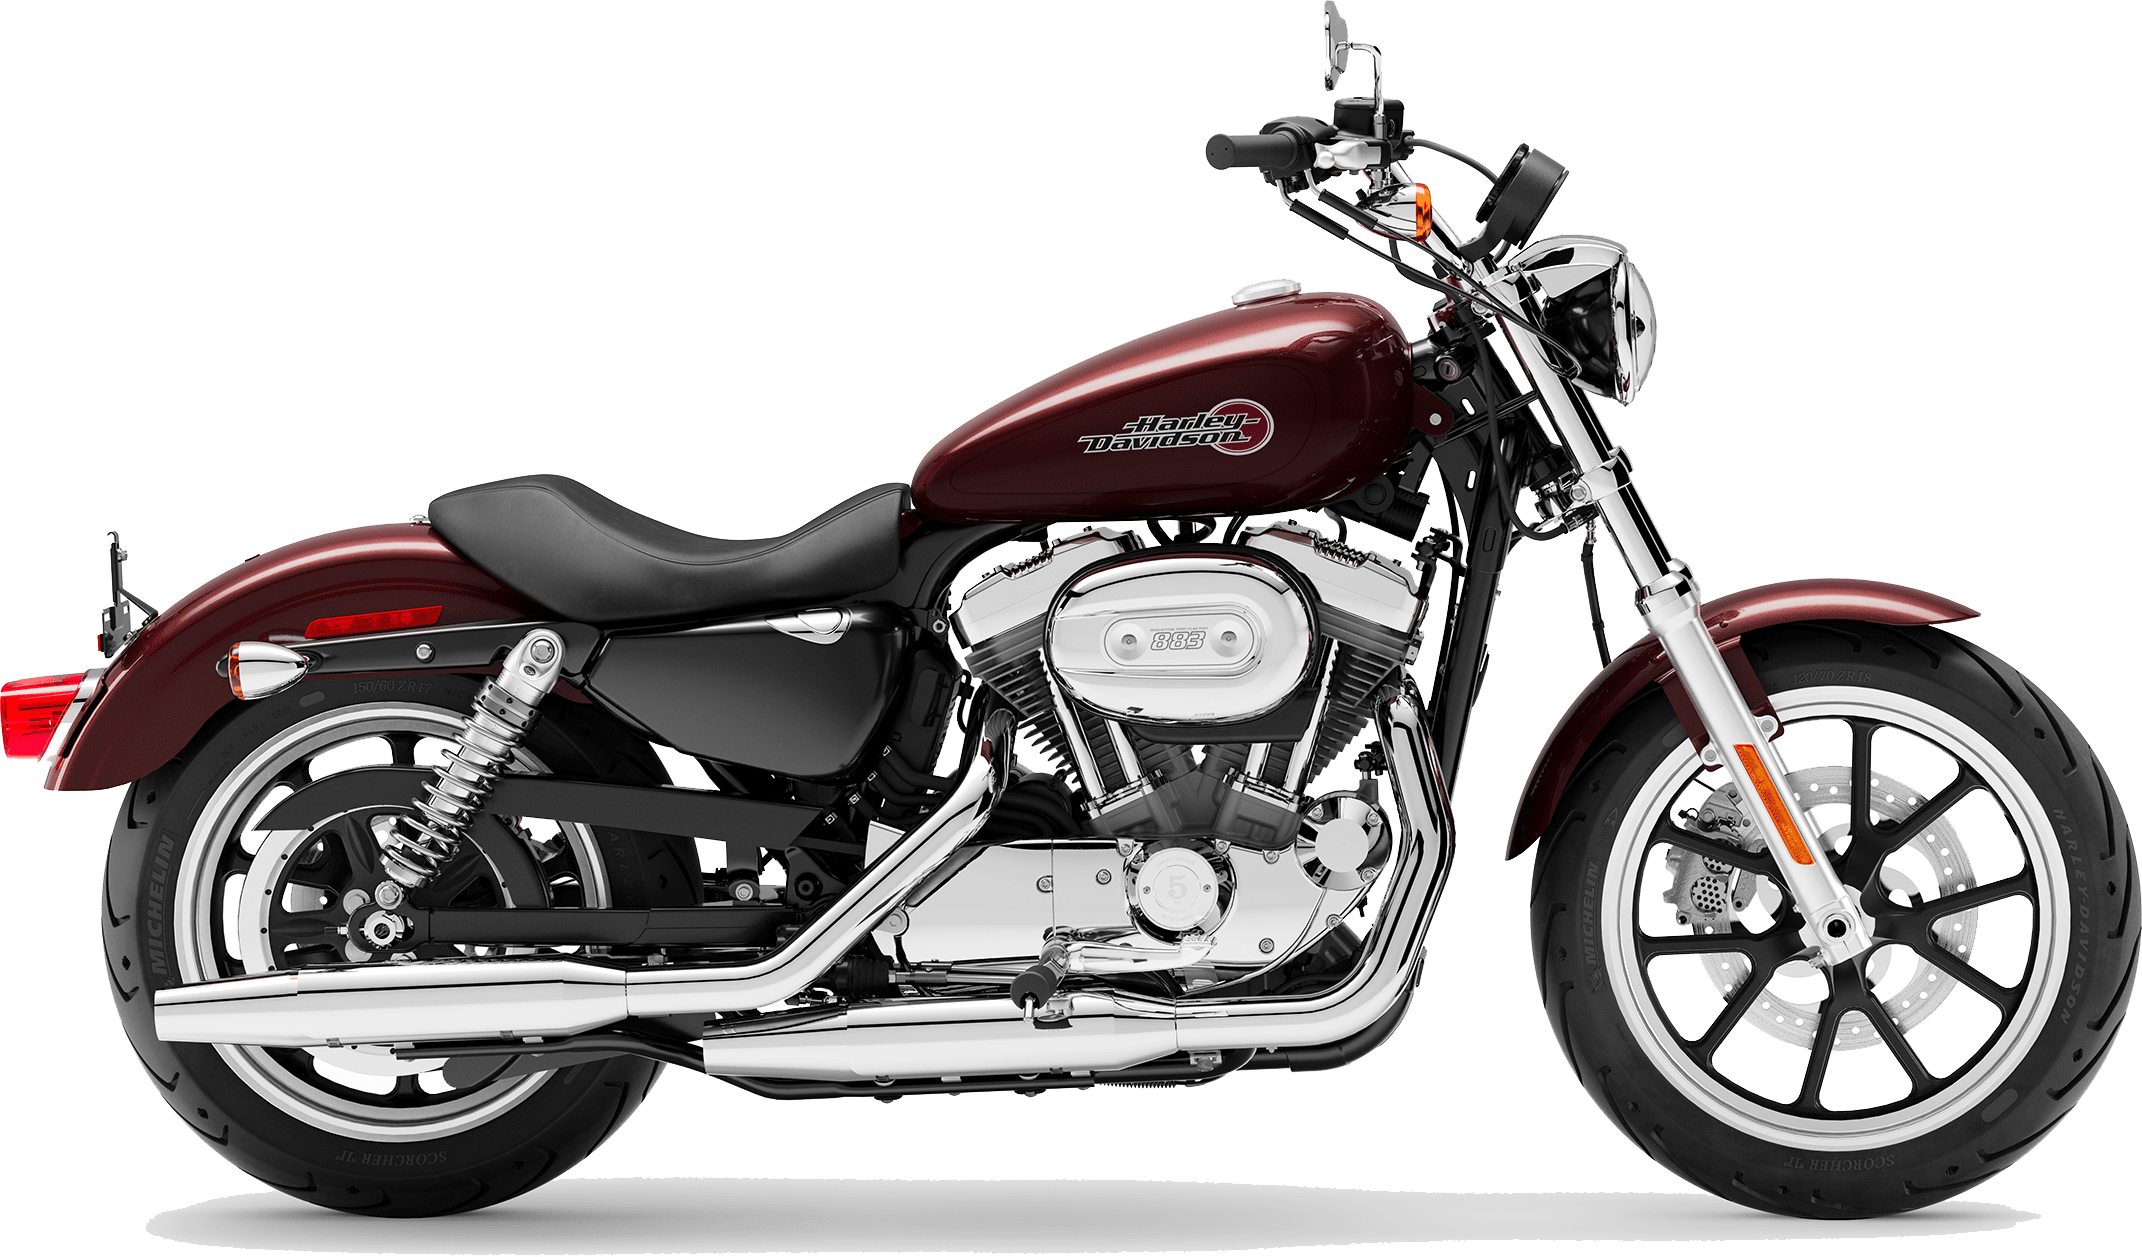 2019 Harley-Davidson H-D SuperLow Twisted Cherry